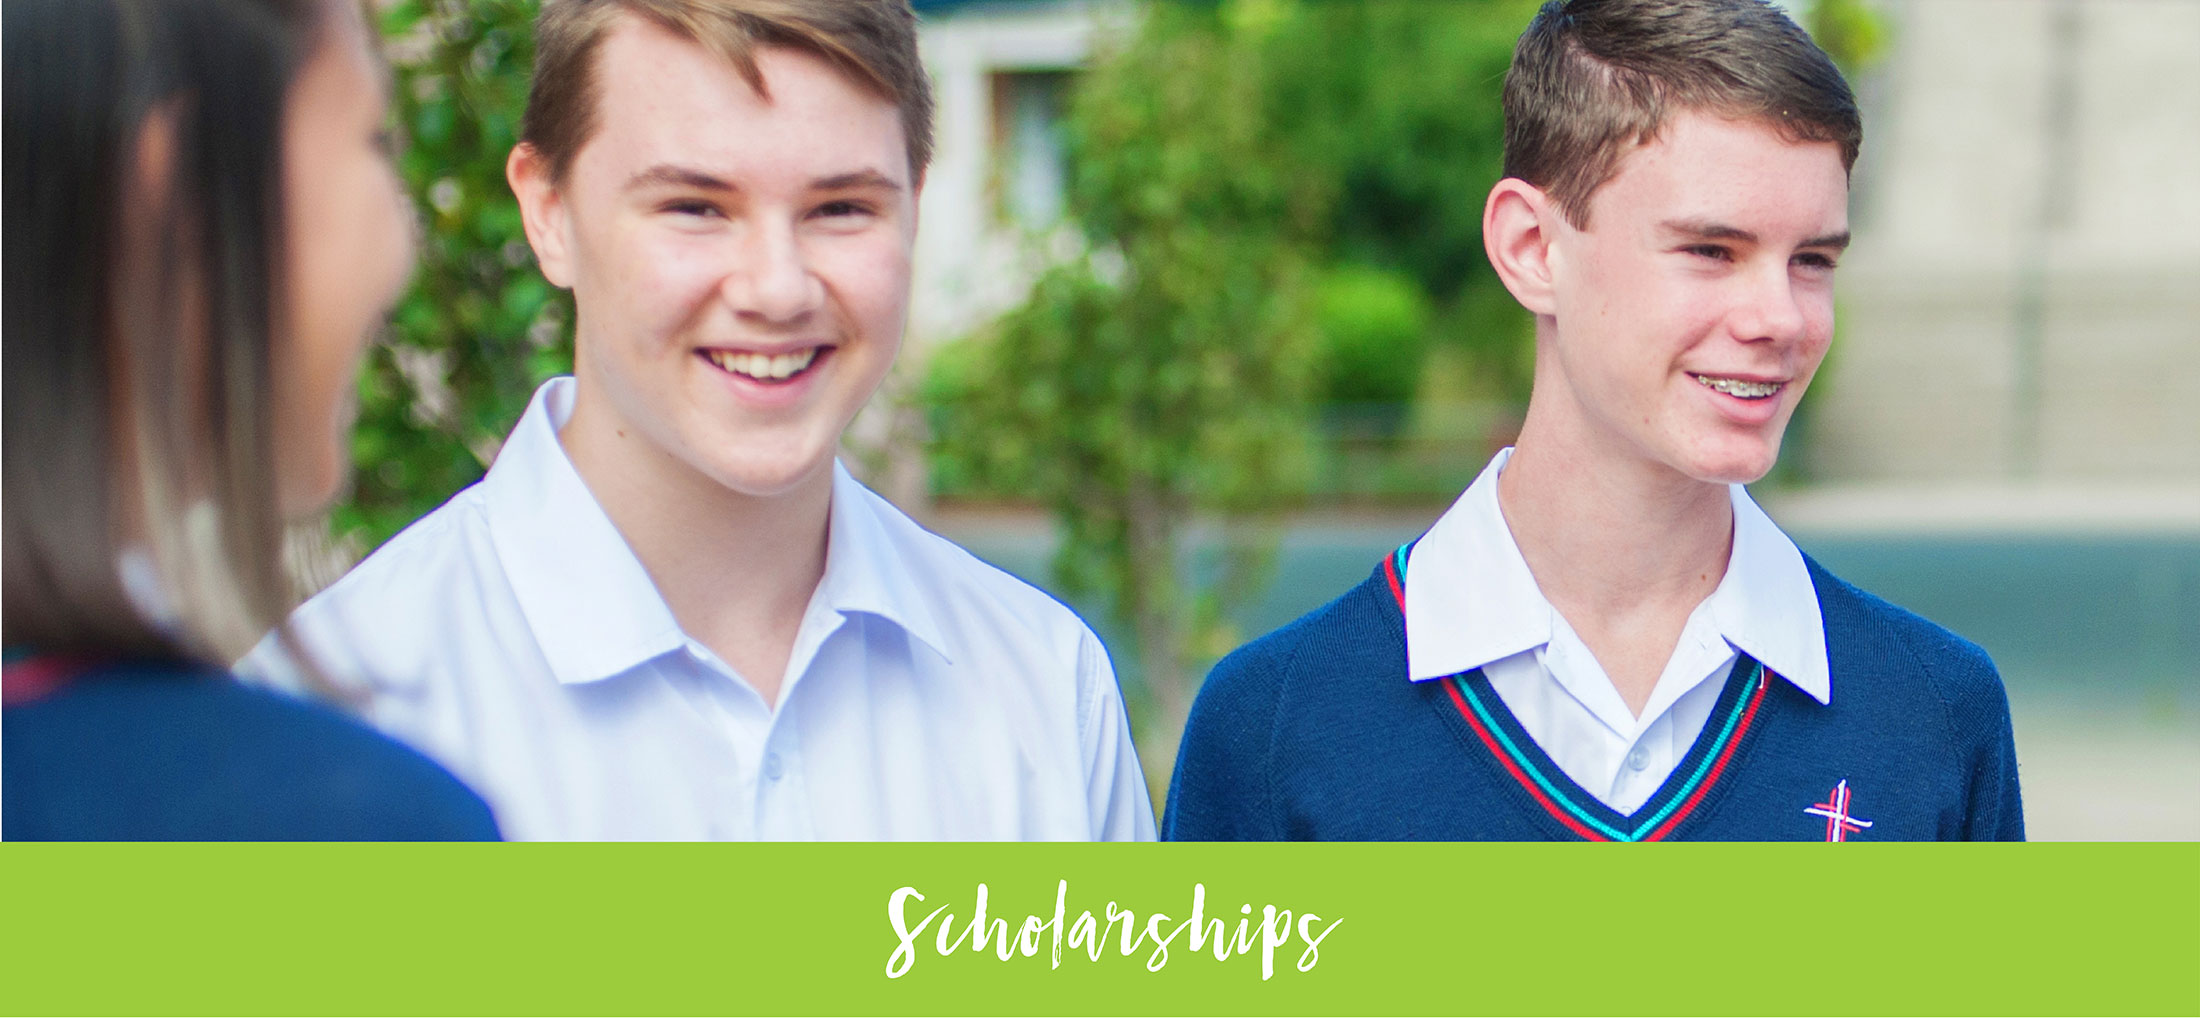 charlton christian college scholarship